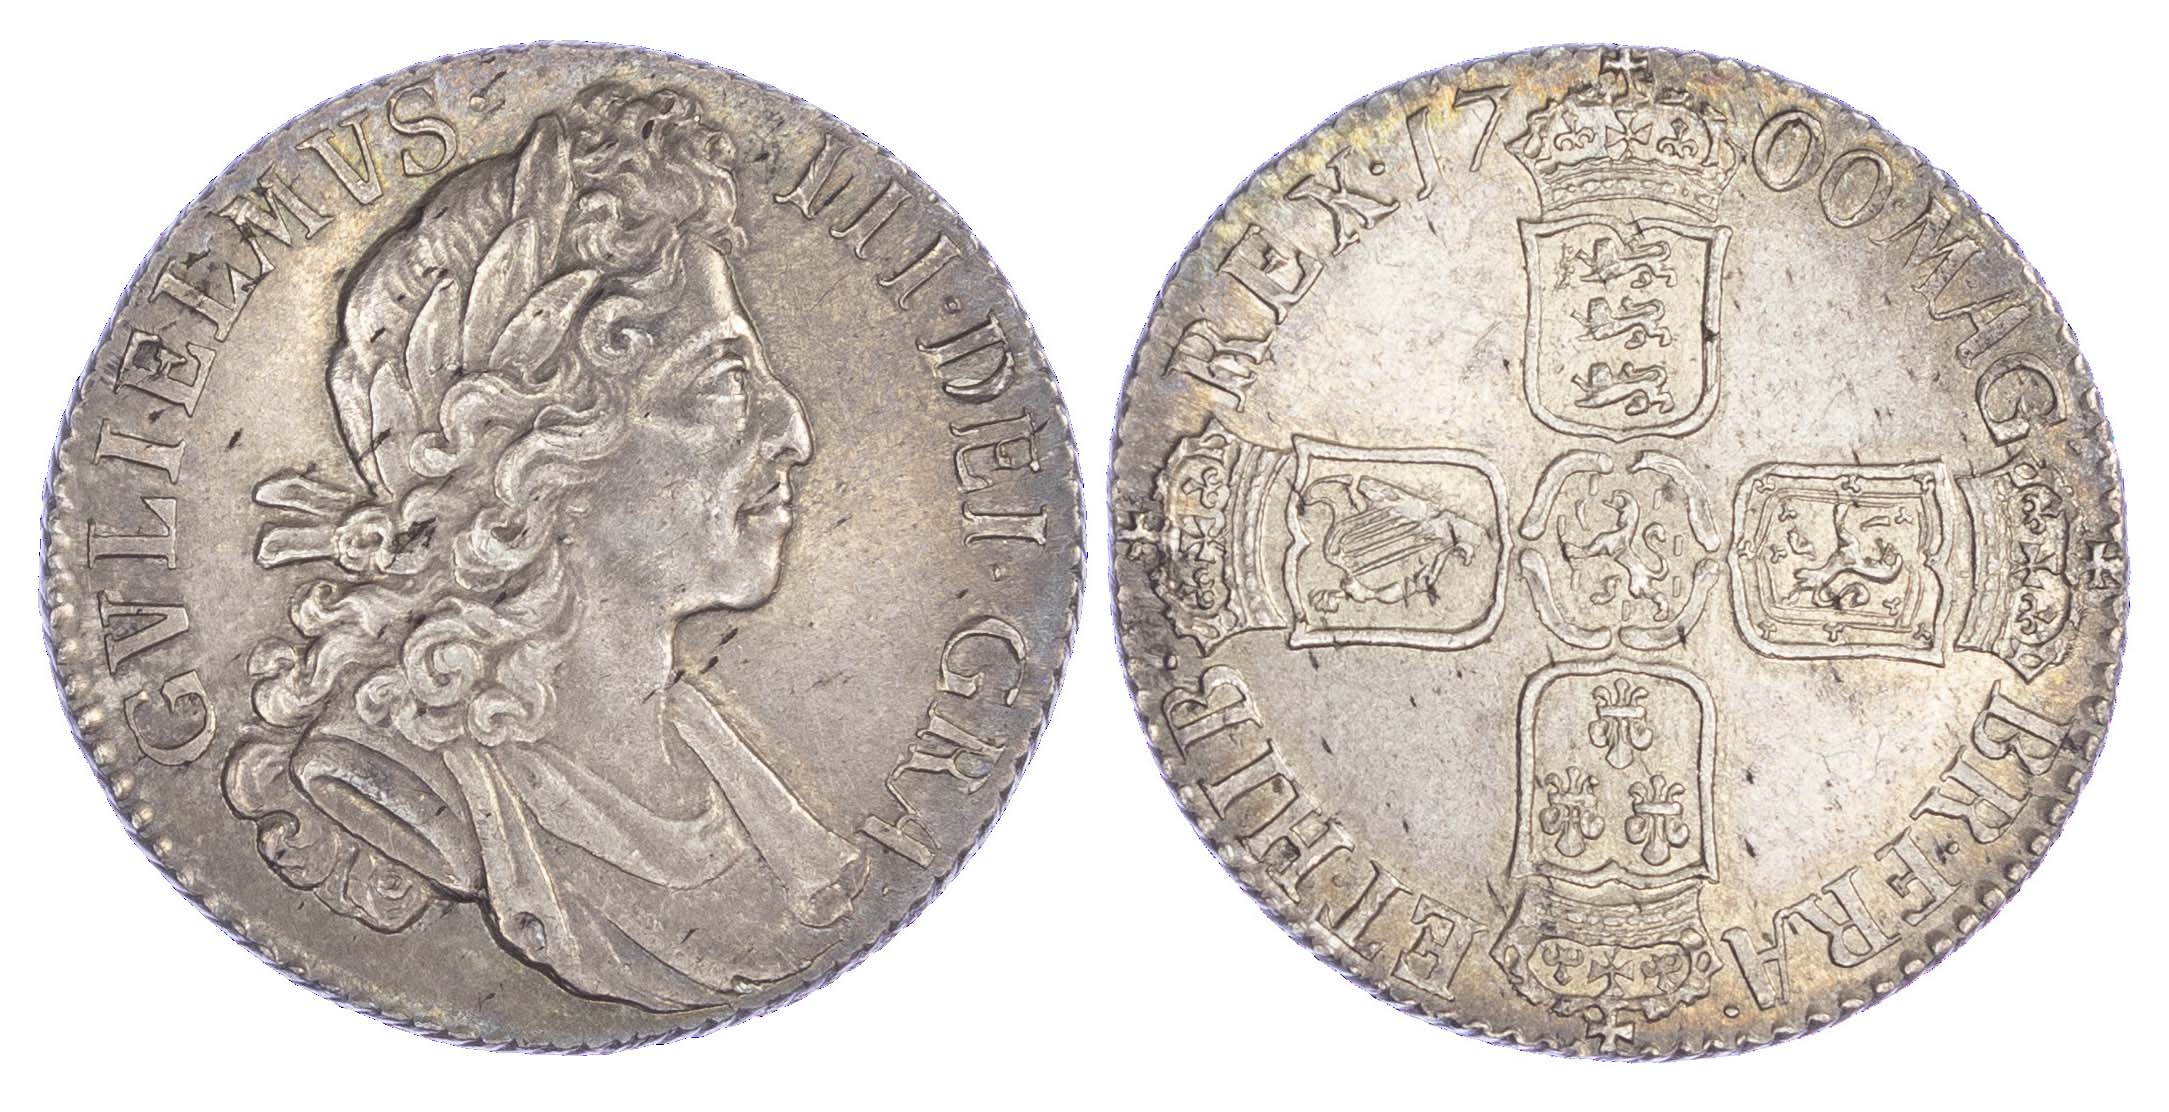 William III (1694-1702), Shilling, 1700, taller 0s in date line, fifth bust